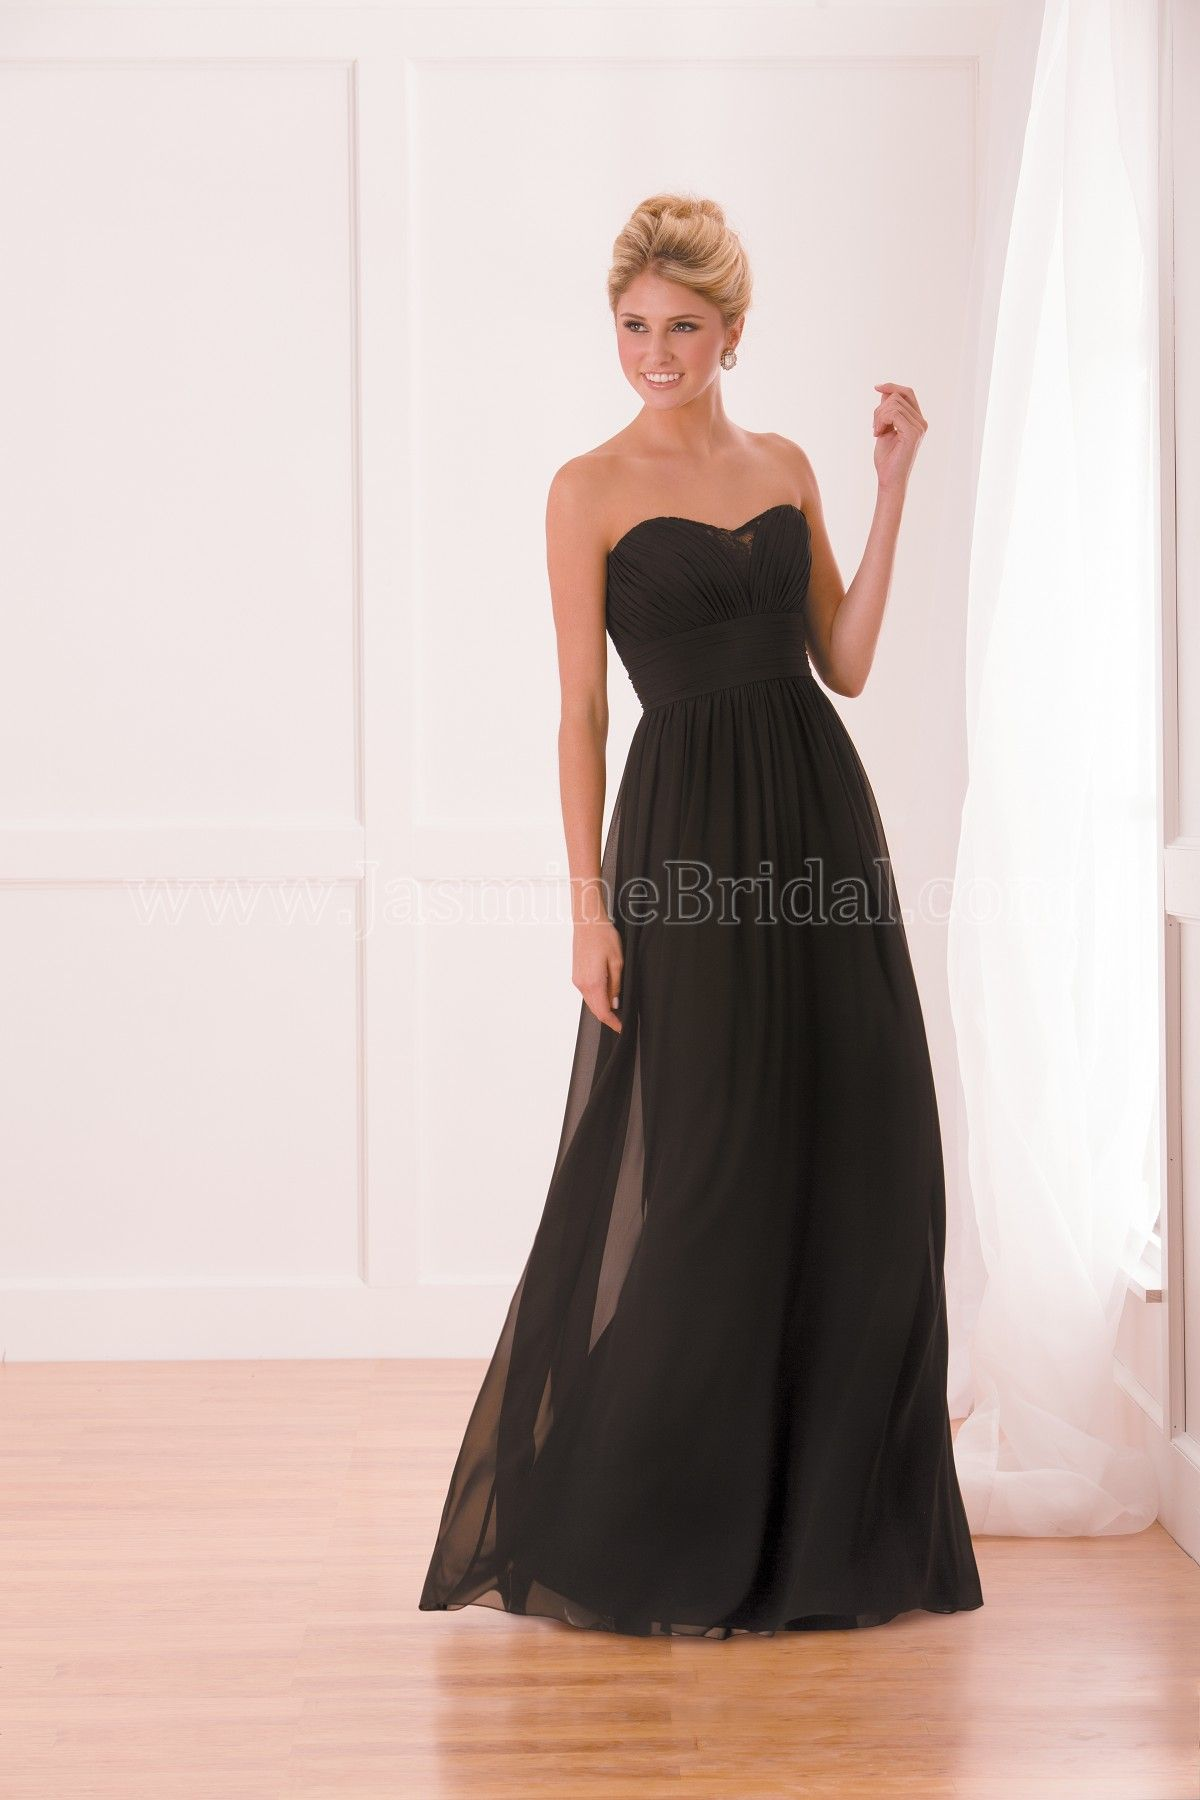 Beautiful b2 bridesmaid gown featured in black sweetheart beautiful b2 bridesmaid gown featured in black sweetheart neckline with poly chiffon and lace connecting ombrellifo Gallery